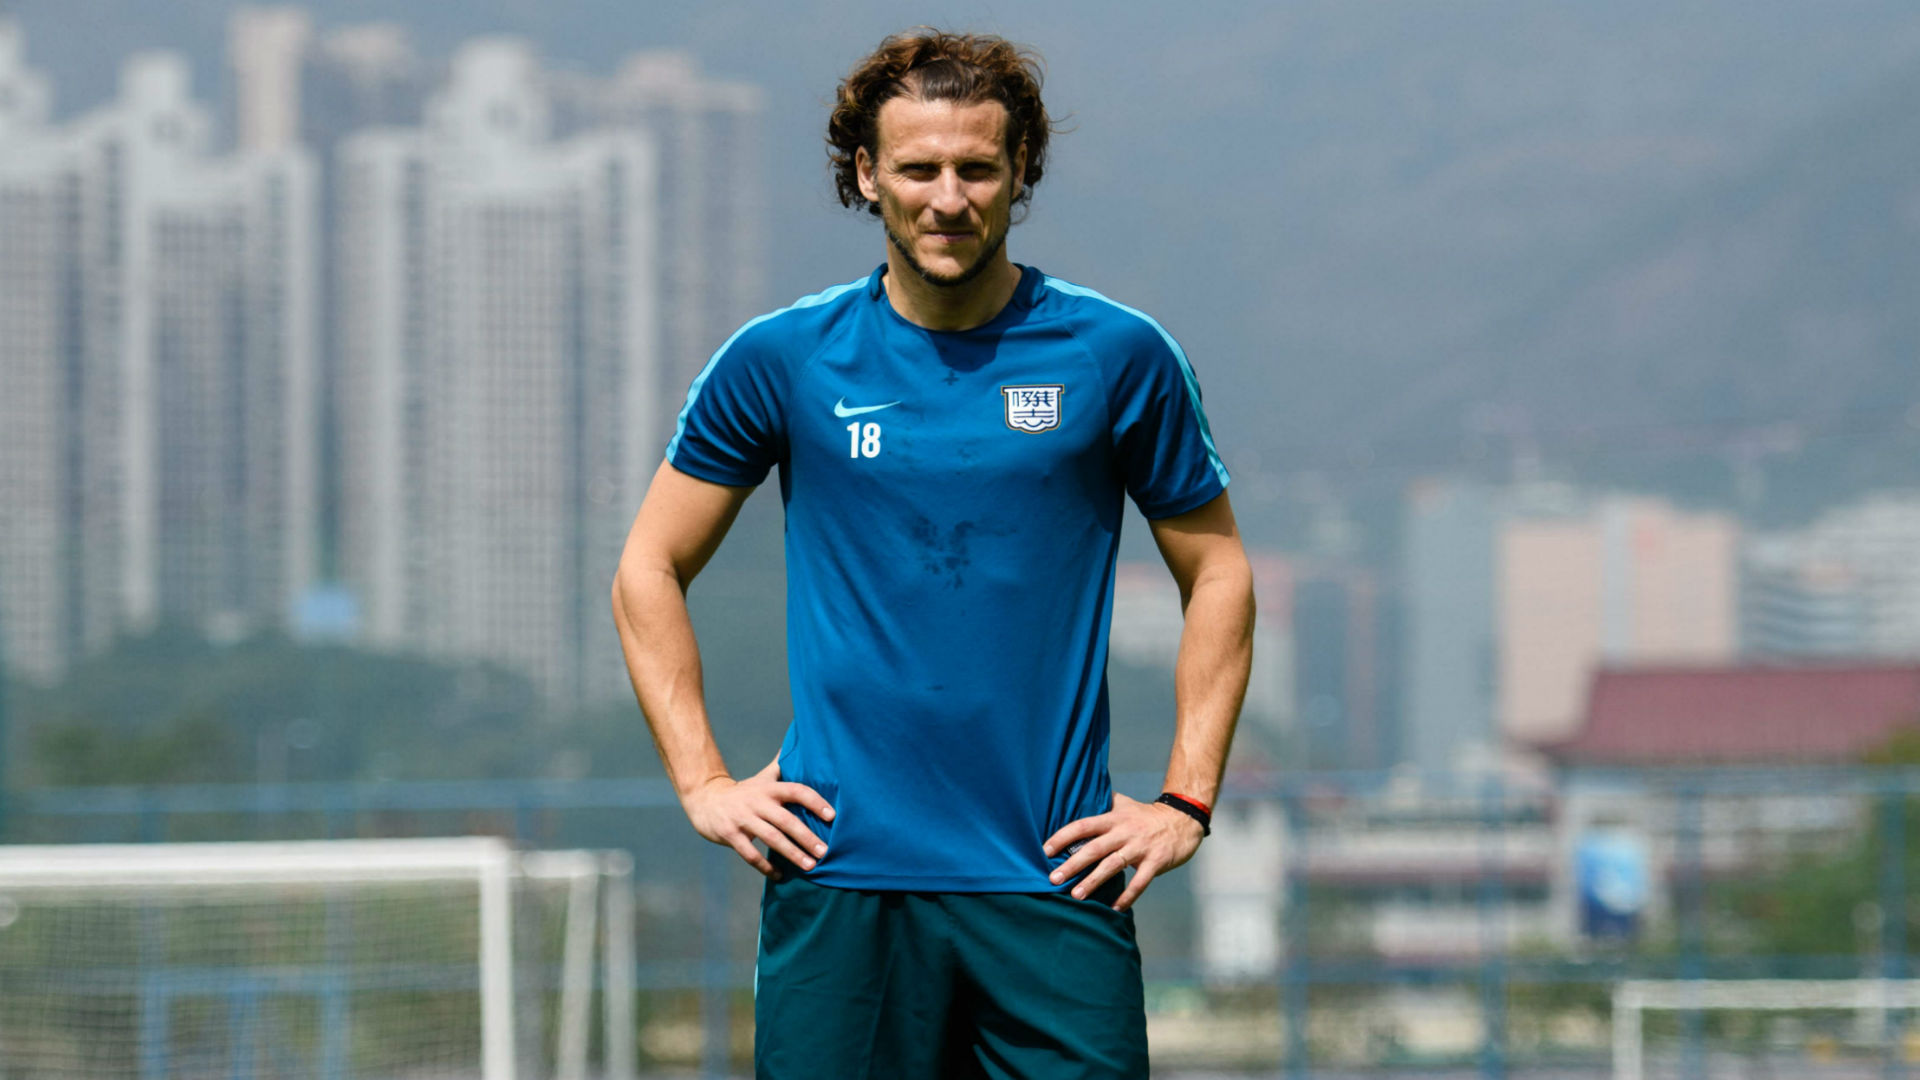 Uruguay star and former Manchester United player Diego Forlan retires